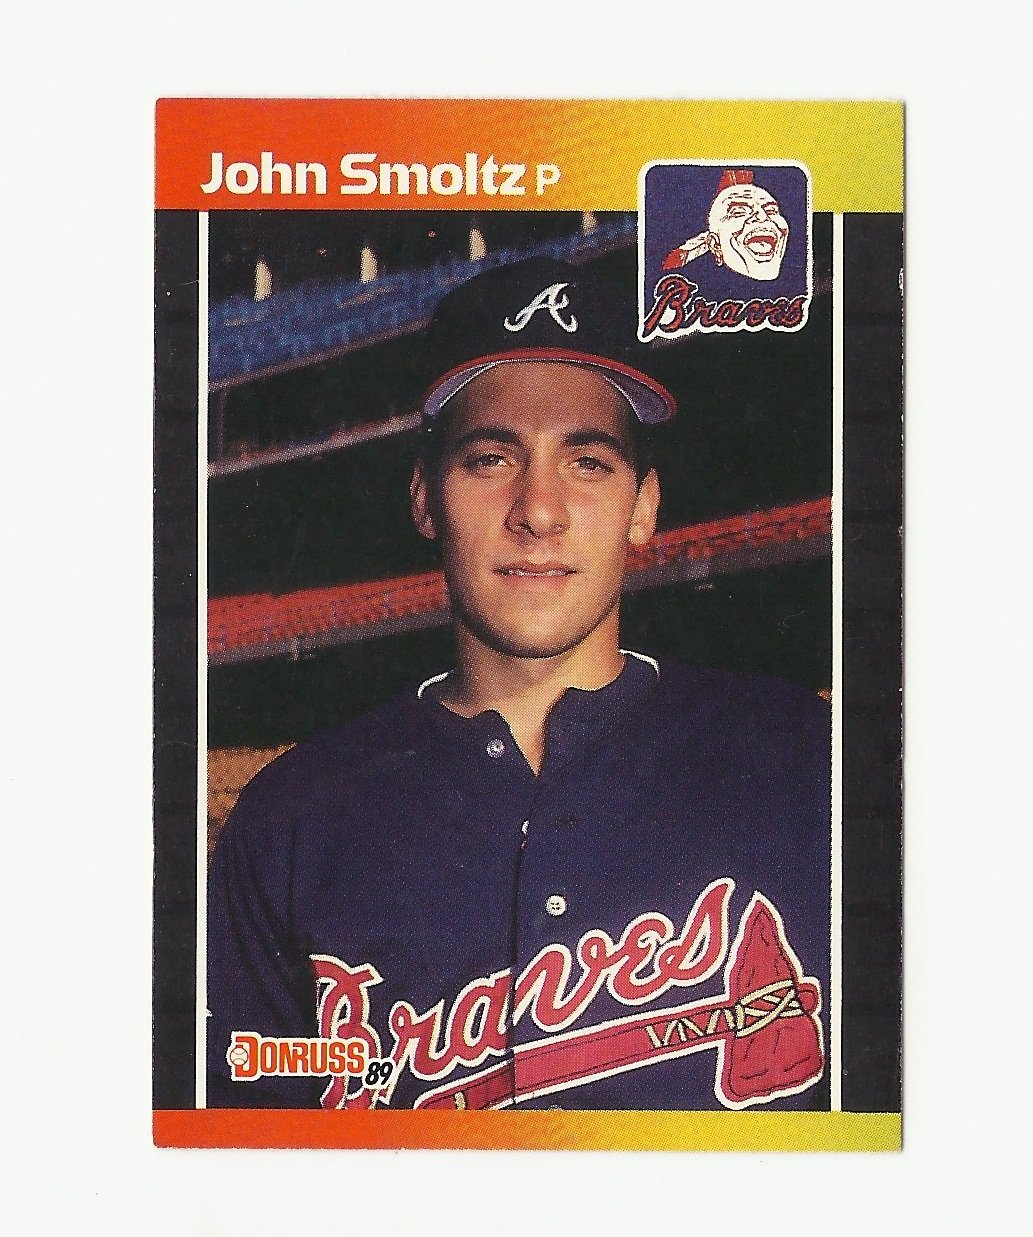 John Smoltz 1989 Donruss Rookie Card 642 Atlanta Braves: John Smoltz 1989 Donruss Rookie Card #642 Atlanta Braves